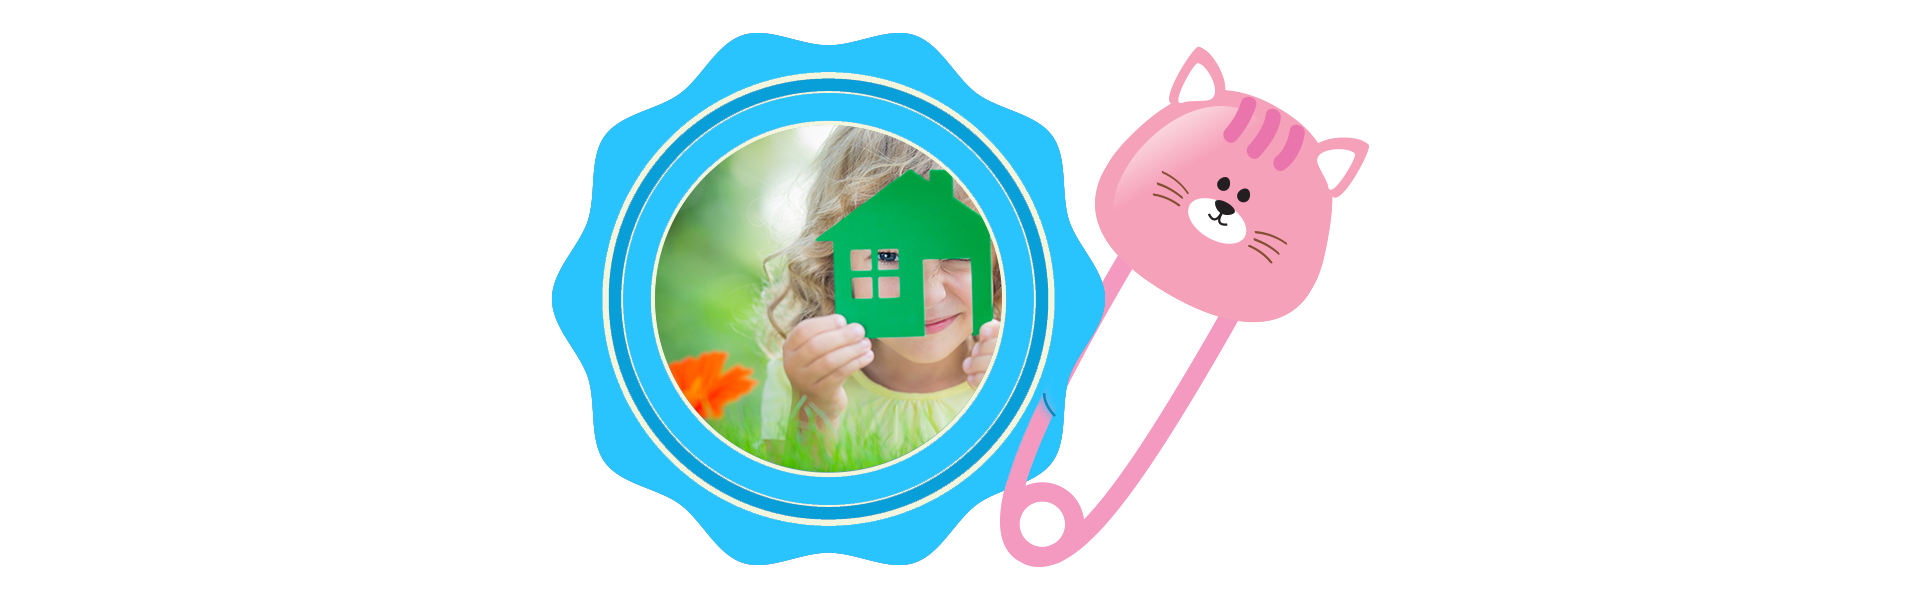 badge and baby pin of cat holding image of little girl and paper home